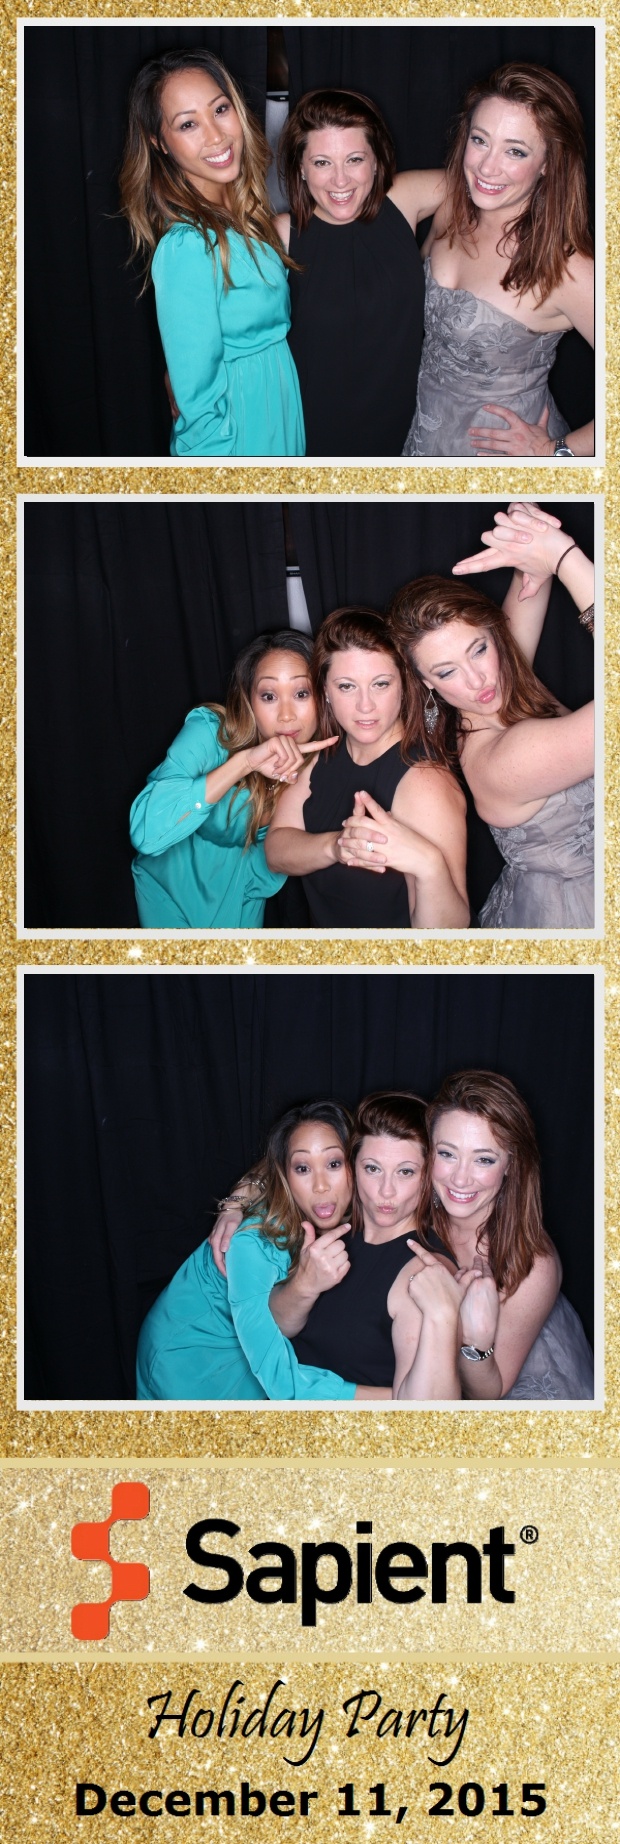 Guest House Events Photo Booth Sapient Holiday Party (84).jpg